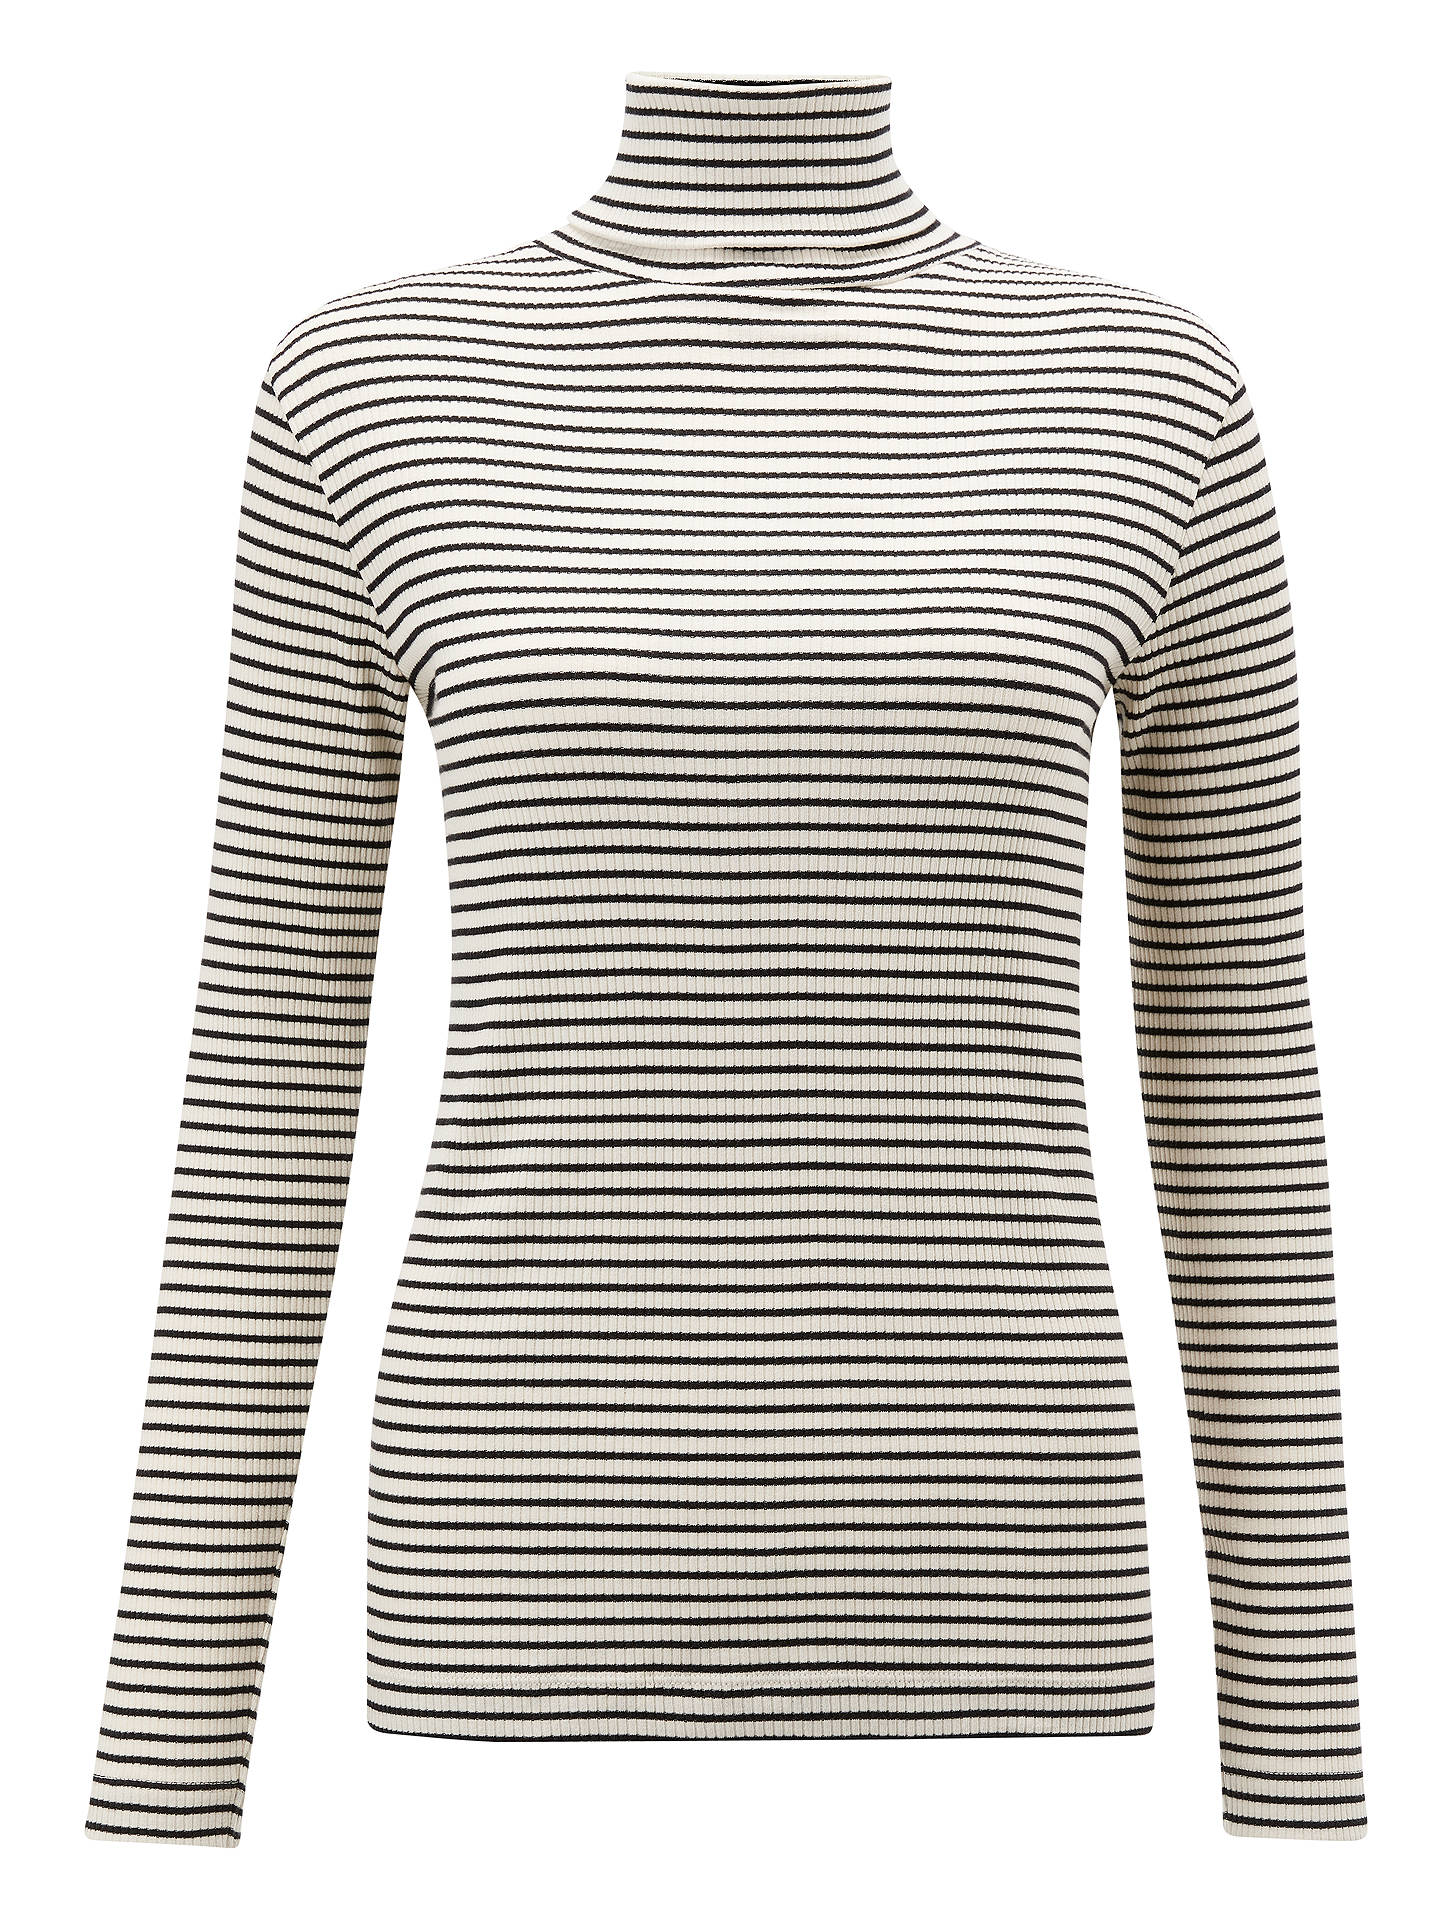 BuyJohn Lewis & Partners Stripe Rib Roll Neck Jumper, Ivory/Black, 8 Online at johnlewis.com